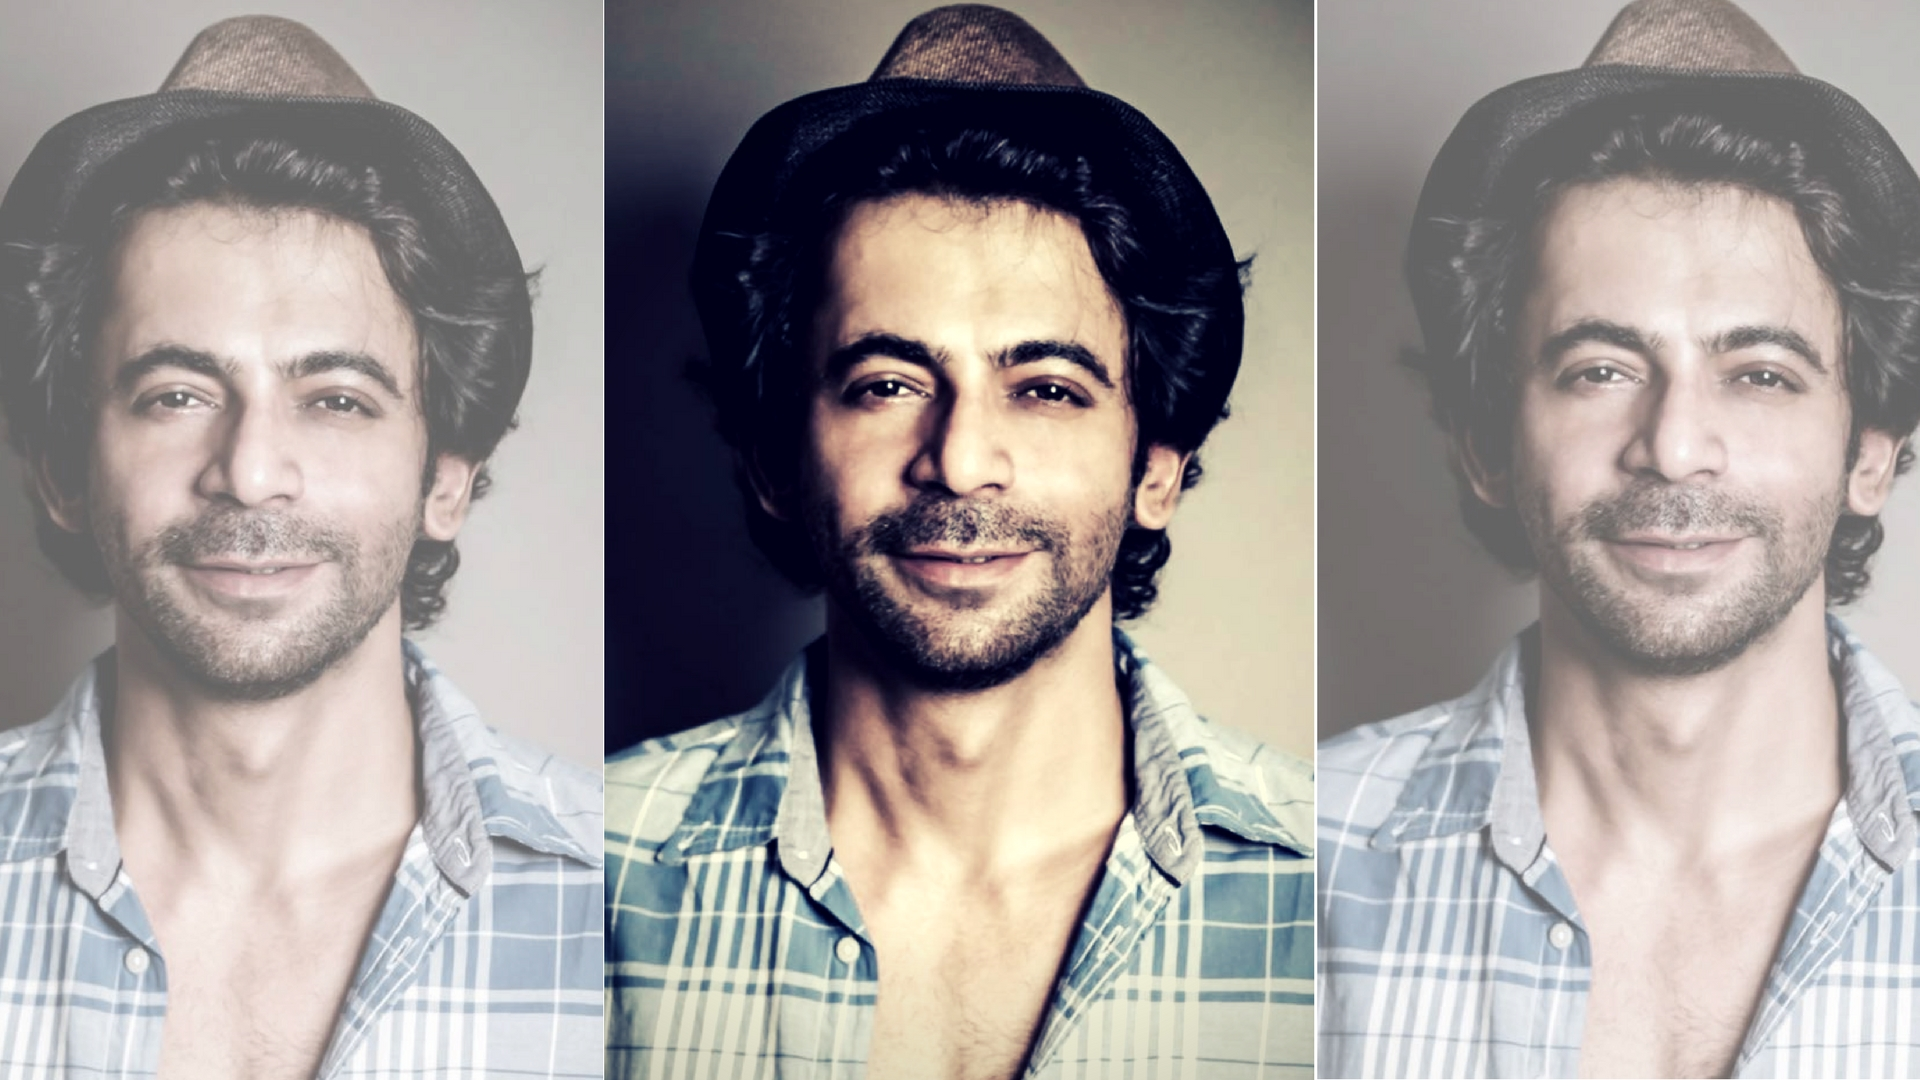 Sunil Grover's Comeback Show; 'Kanpur Wale Khuranas' is Going Off Air - Here's the Reason